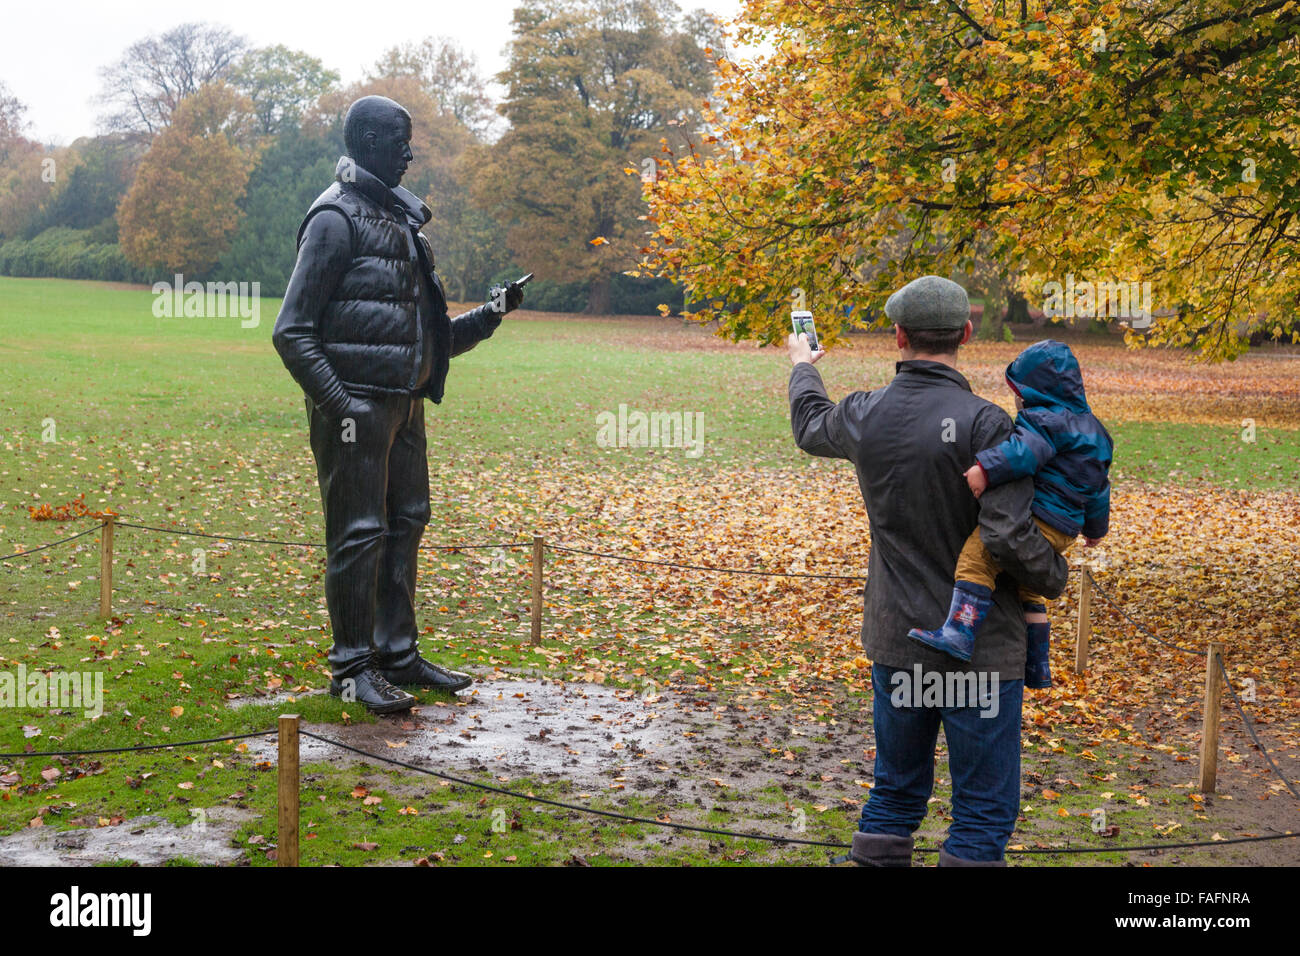 Thomas Price's 'Network' being photographed by mobile phone at the Yorkshire Sculpture Park, Wakefield, - Stock Image